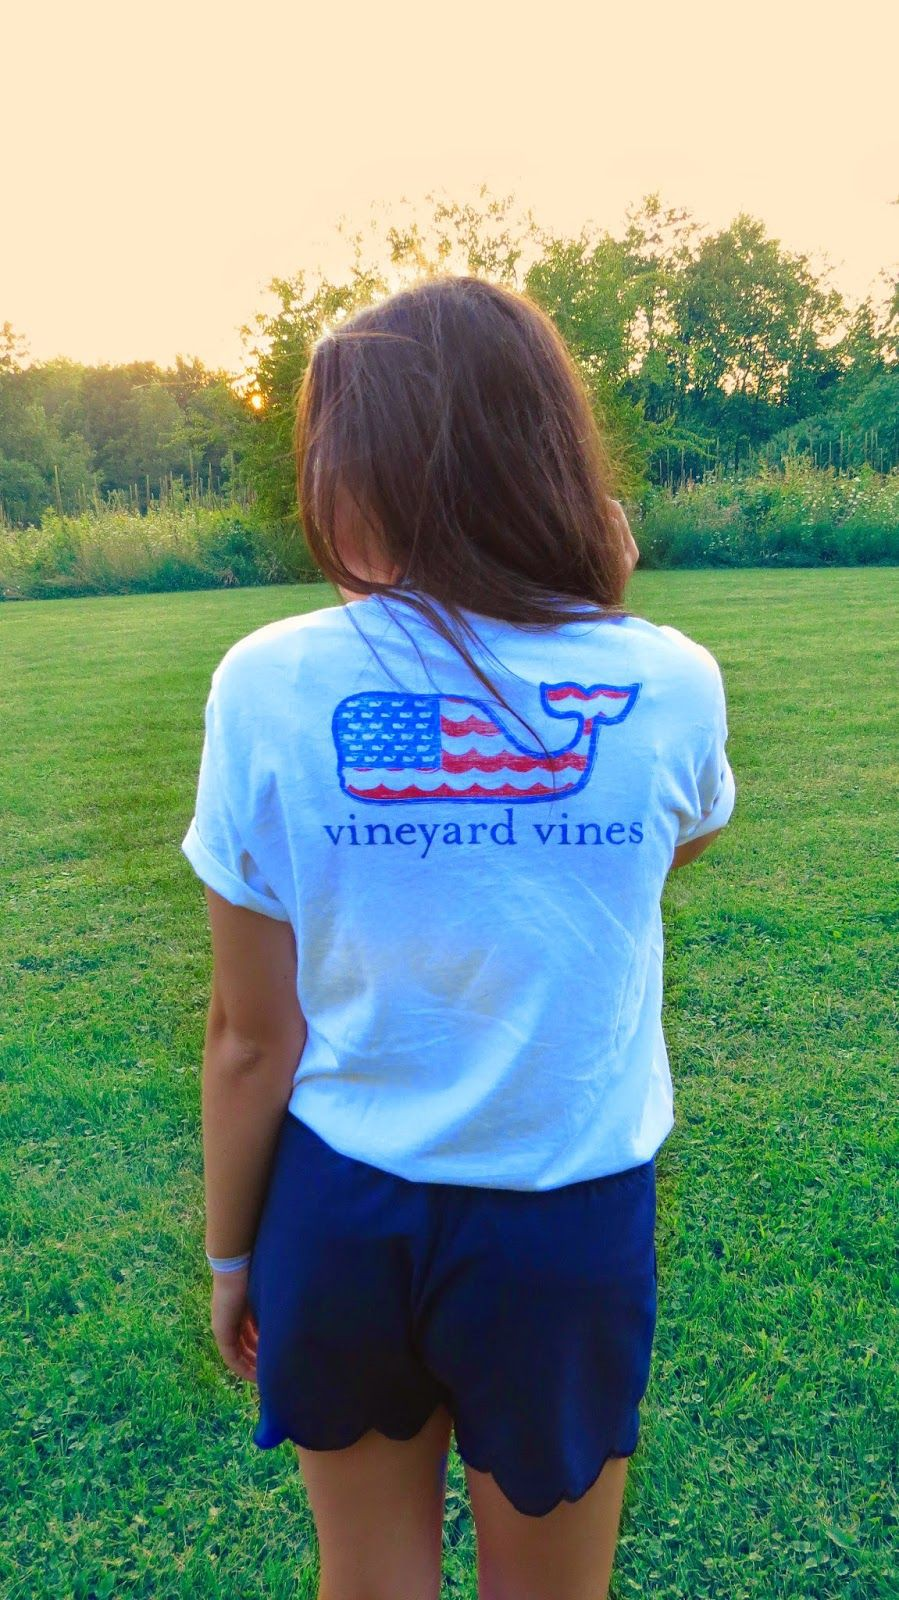 Vineyard vines and shorts outfit